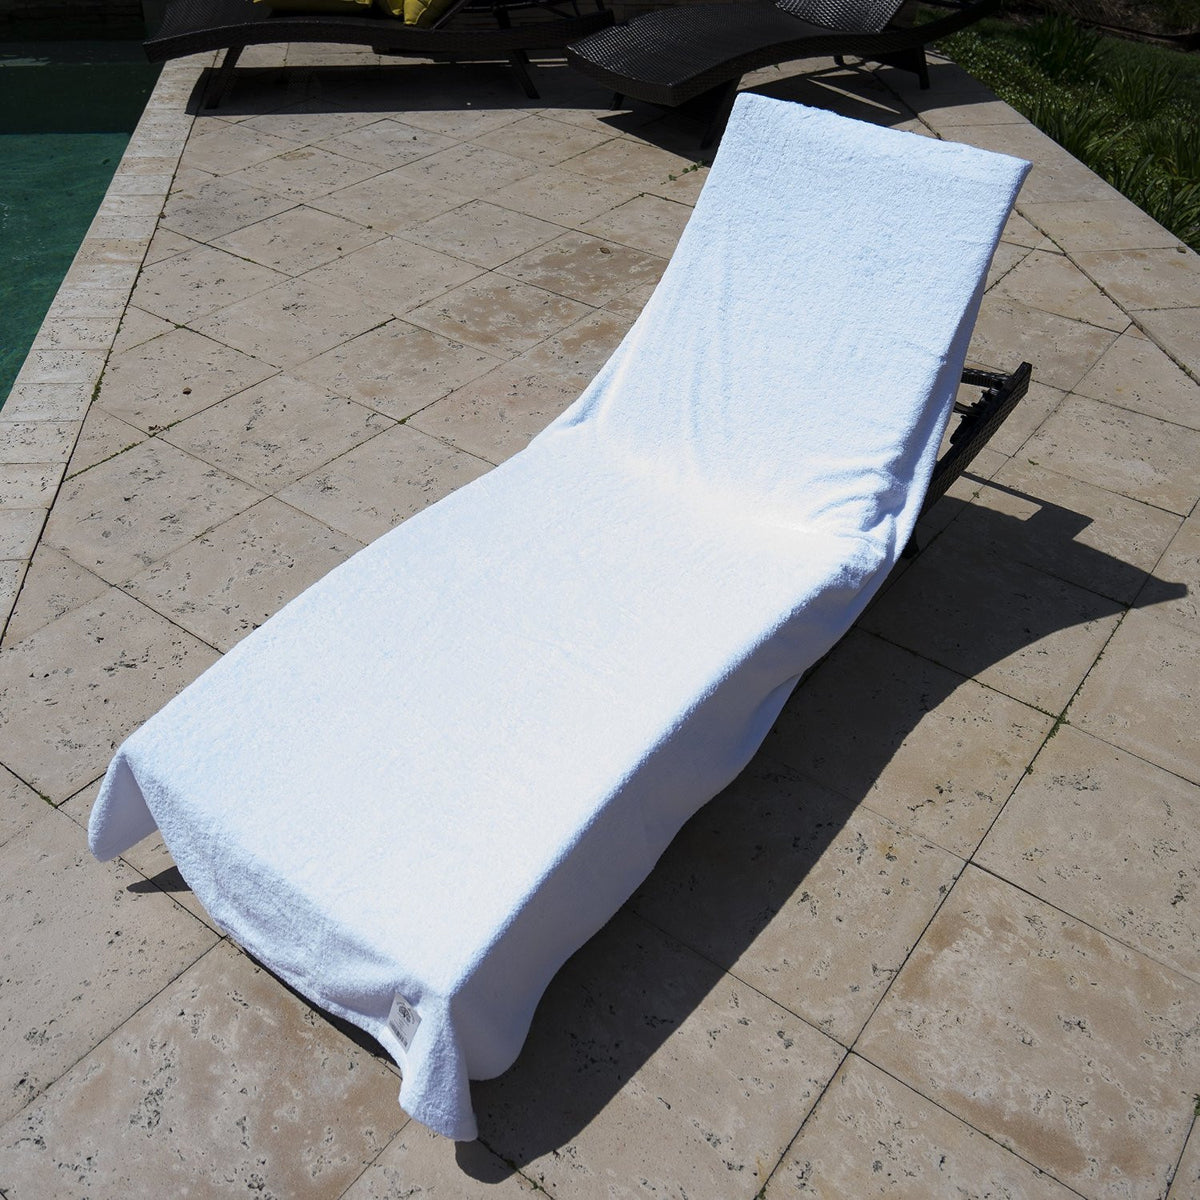 Enjoyable Resort Terry Lounge Chair Towels Bralicious Painted Fabric Chair Ideas Braliciousco